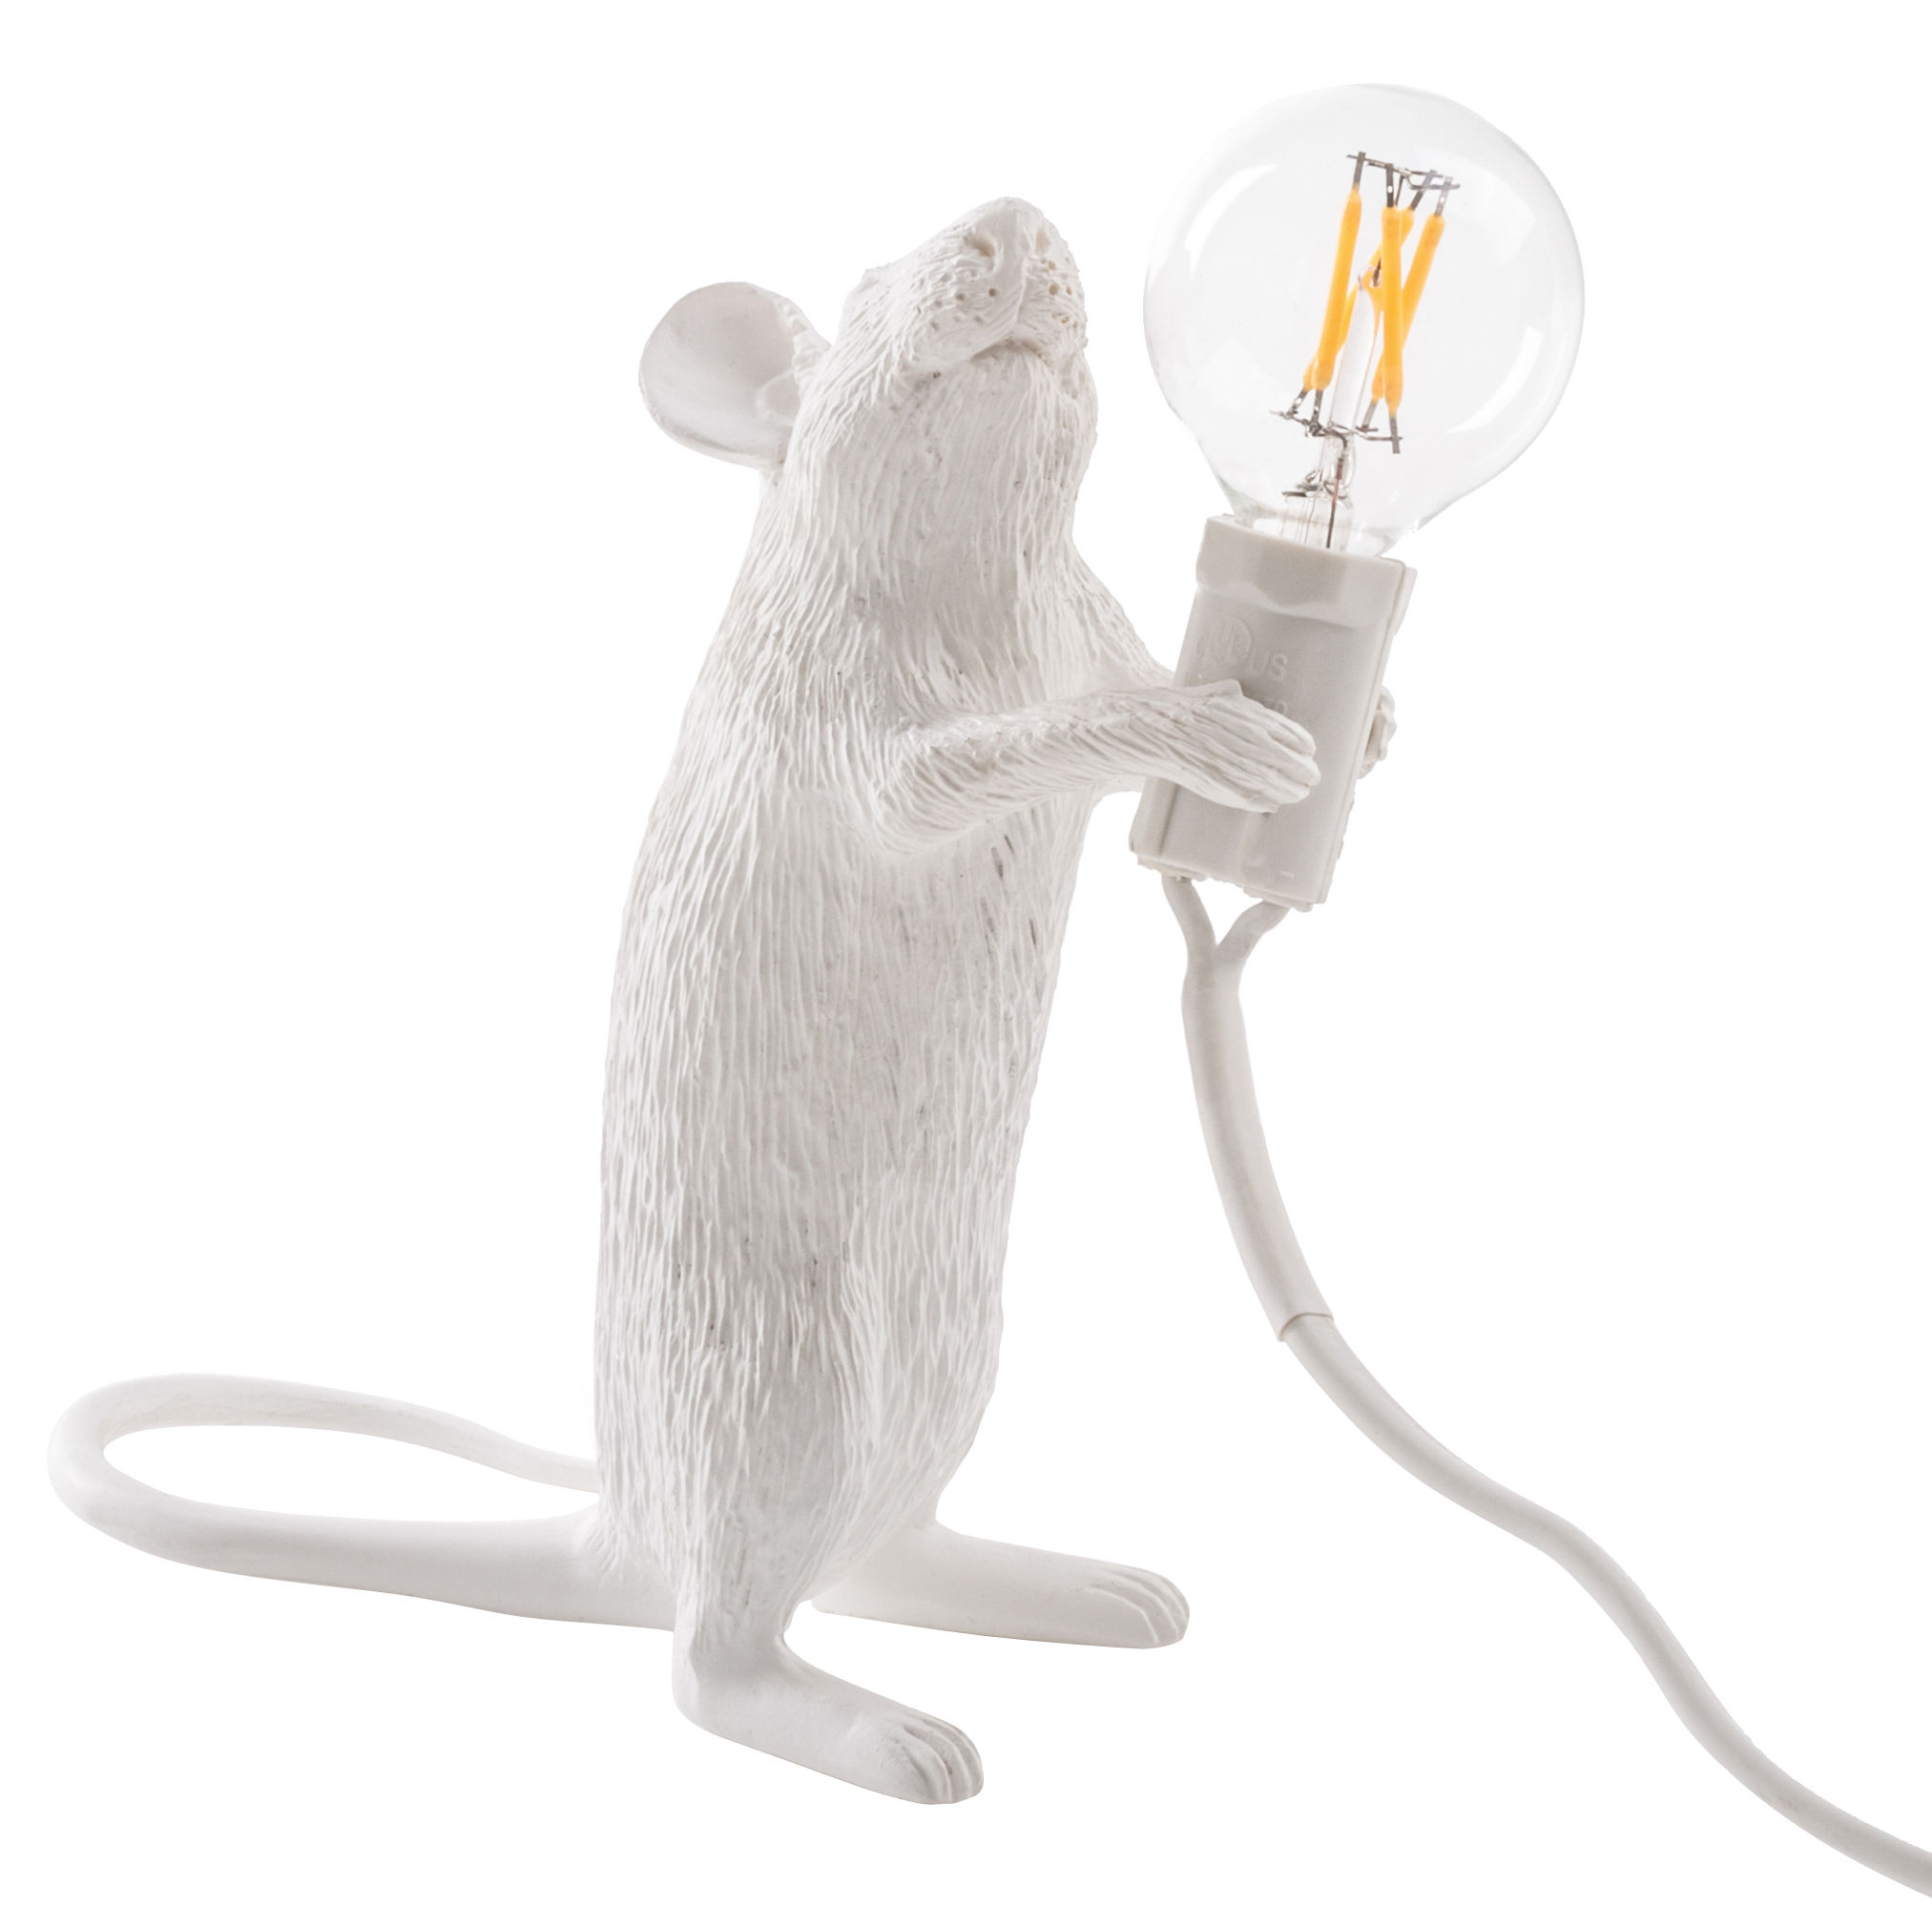 Decoration - Children's Home Accessories - Mouse Standing #1 Table lamp by Seletti - Standing / White - Resin